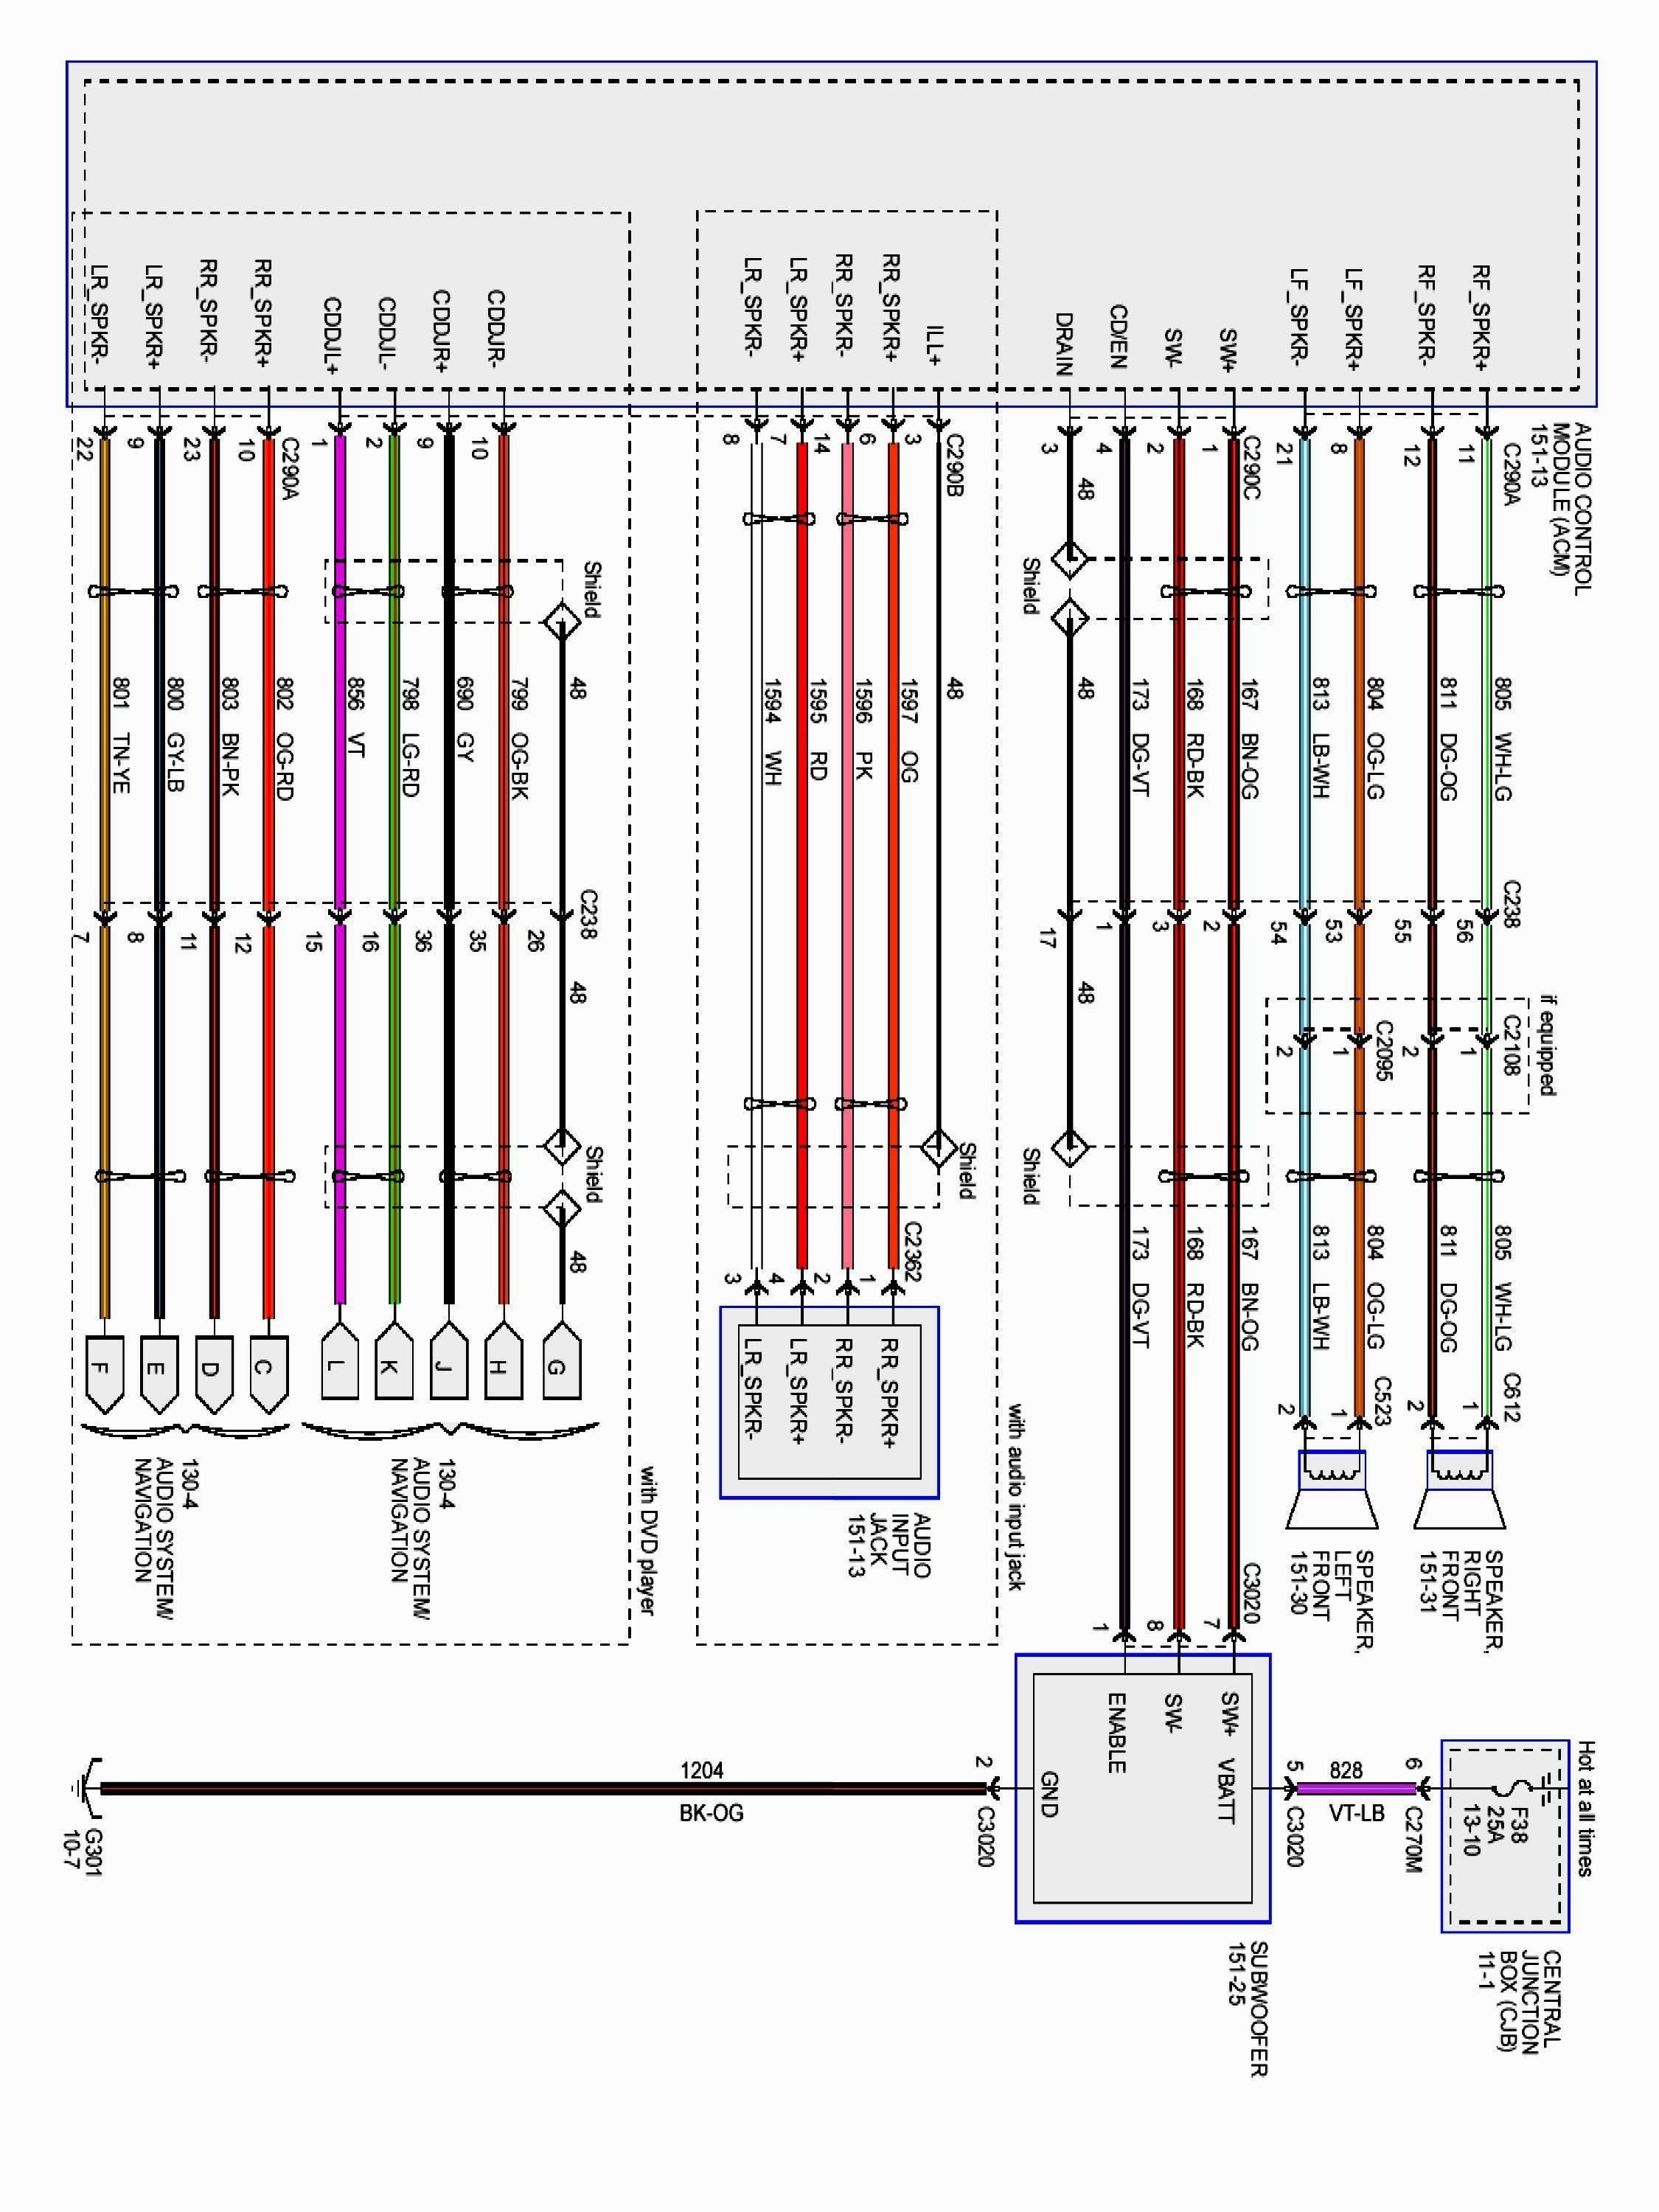 DA_8990] Car Stereo Wiring Diagram For Kenwood Schematic WiringPical Oidei Impa Isra Mohammedshrine Librar Wiring 101